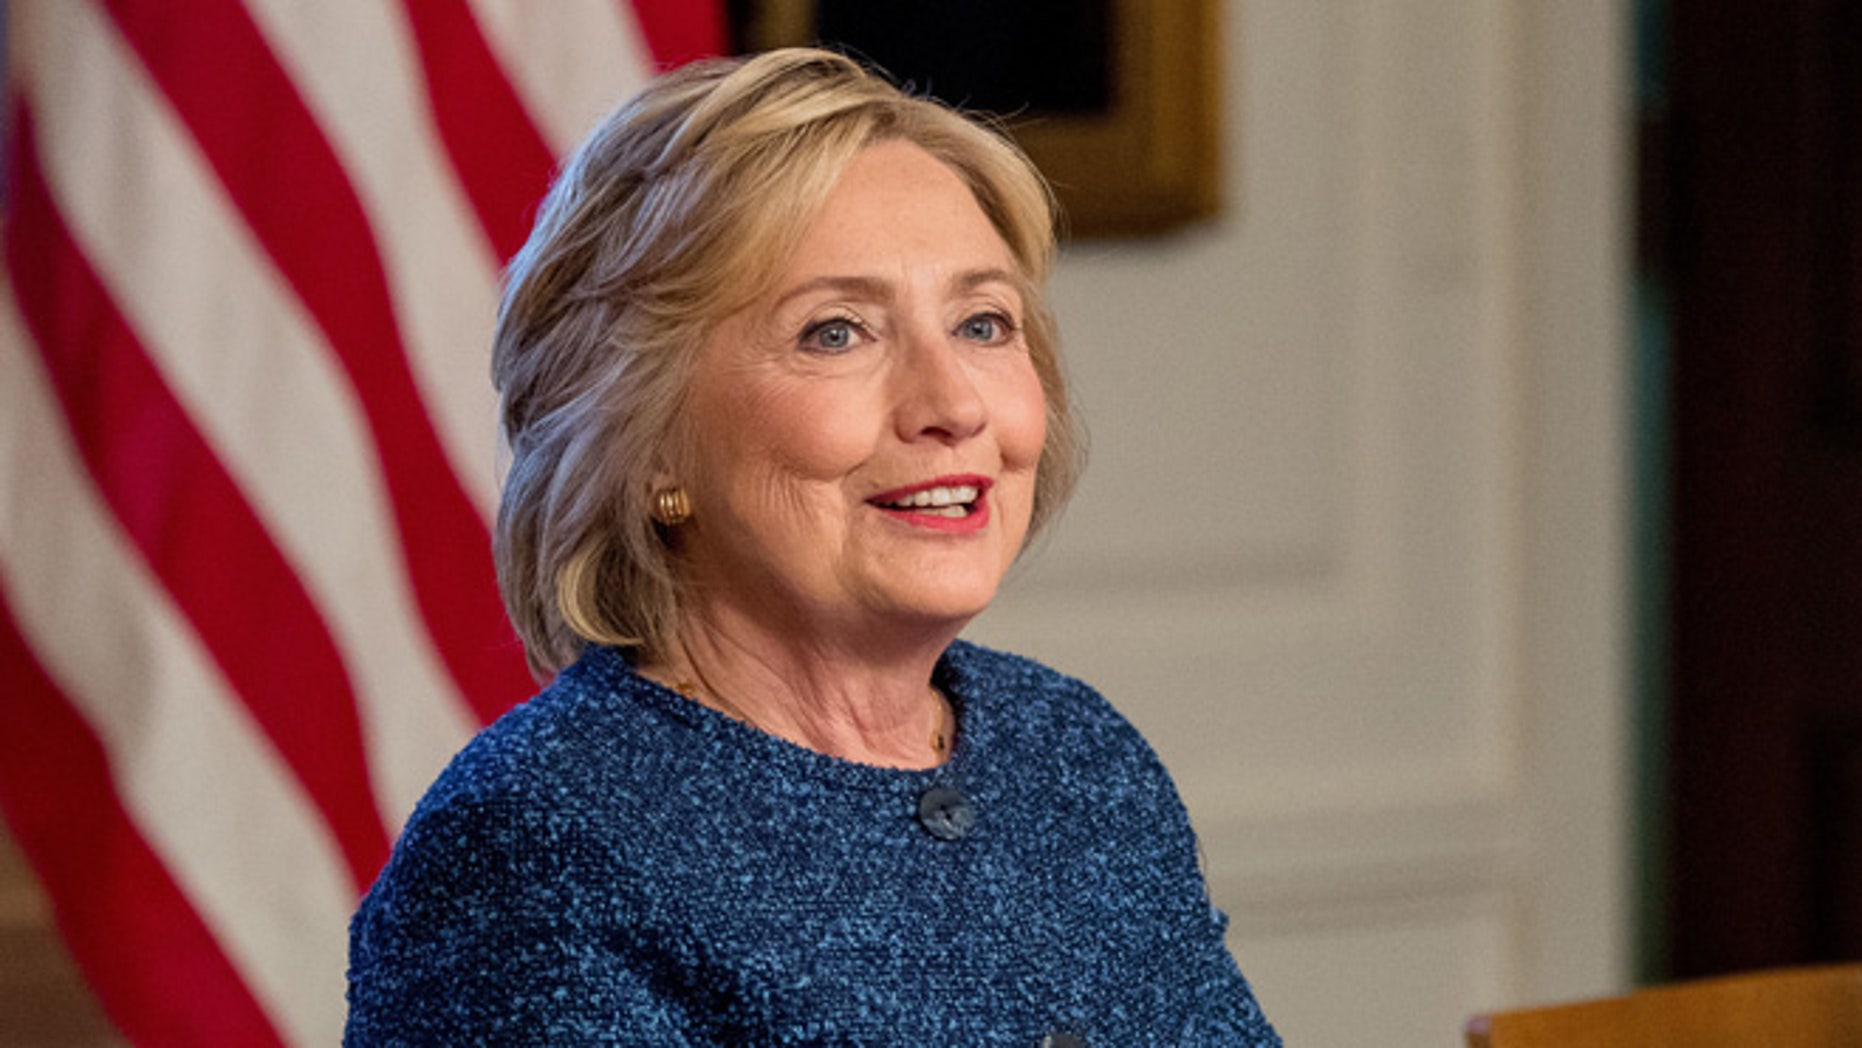 """FILE - In this Sept. 9, 2016 file photo, Democratic presidential candidate Hillary Clinton attends a National Security working session at the Historical Society Library in New York. Hillary Clinton's doctor says she is recovering from her pneumonia and remains """"healthy and fit to serve as President of the United States."""" The statement was part of medical information Clinton's campaign released Wednesday, Sept. 14, 2016, after her pneumonia diagnosis last week. (AP Photo/Andrew Harnik, File)"""